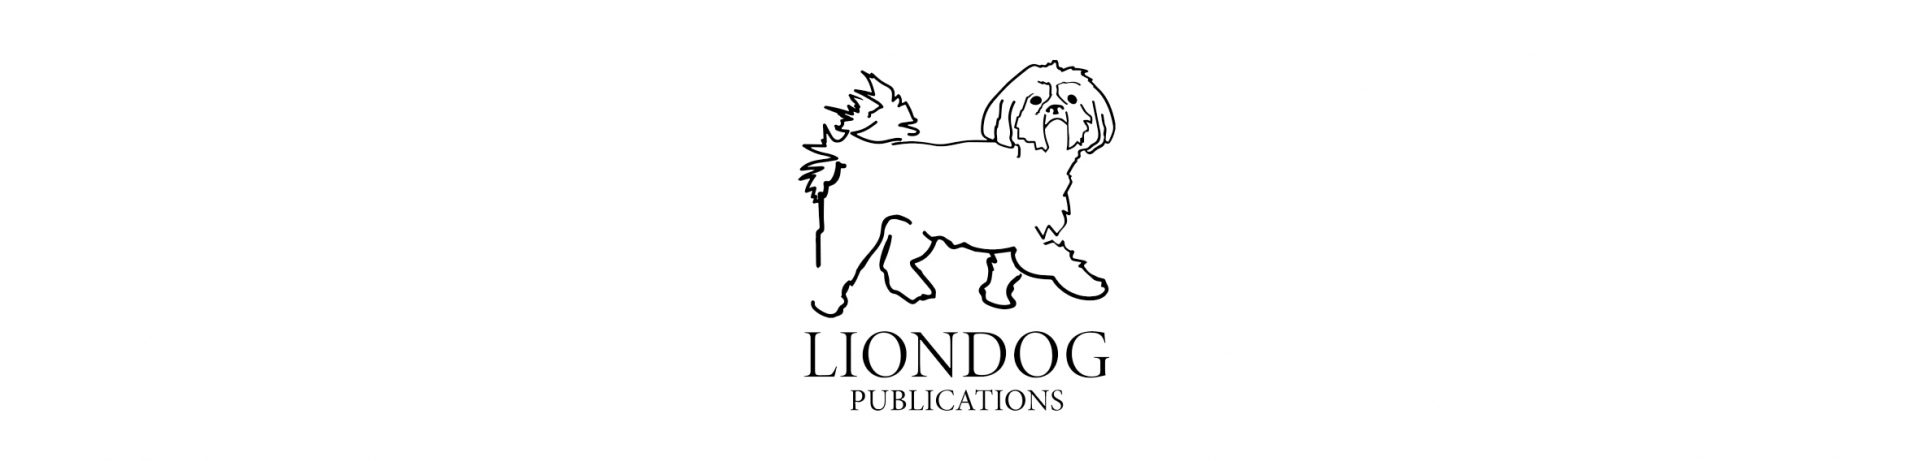 Liondog Publications